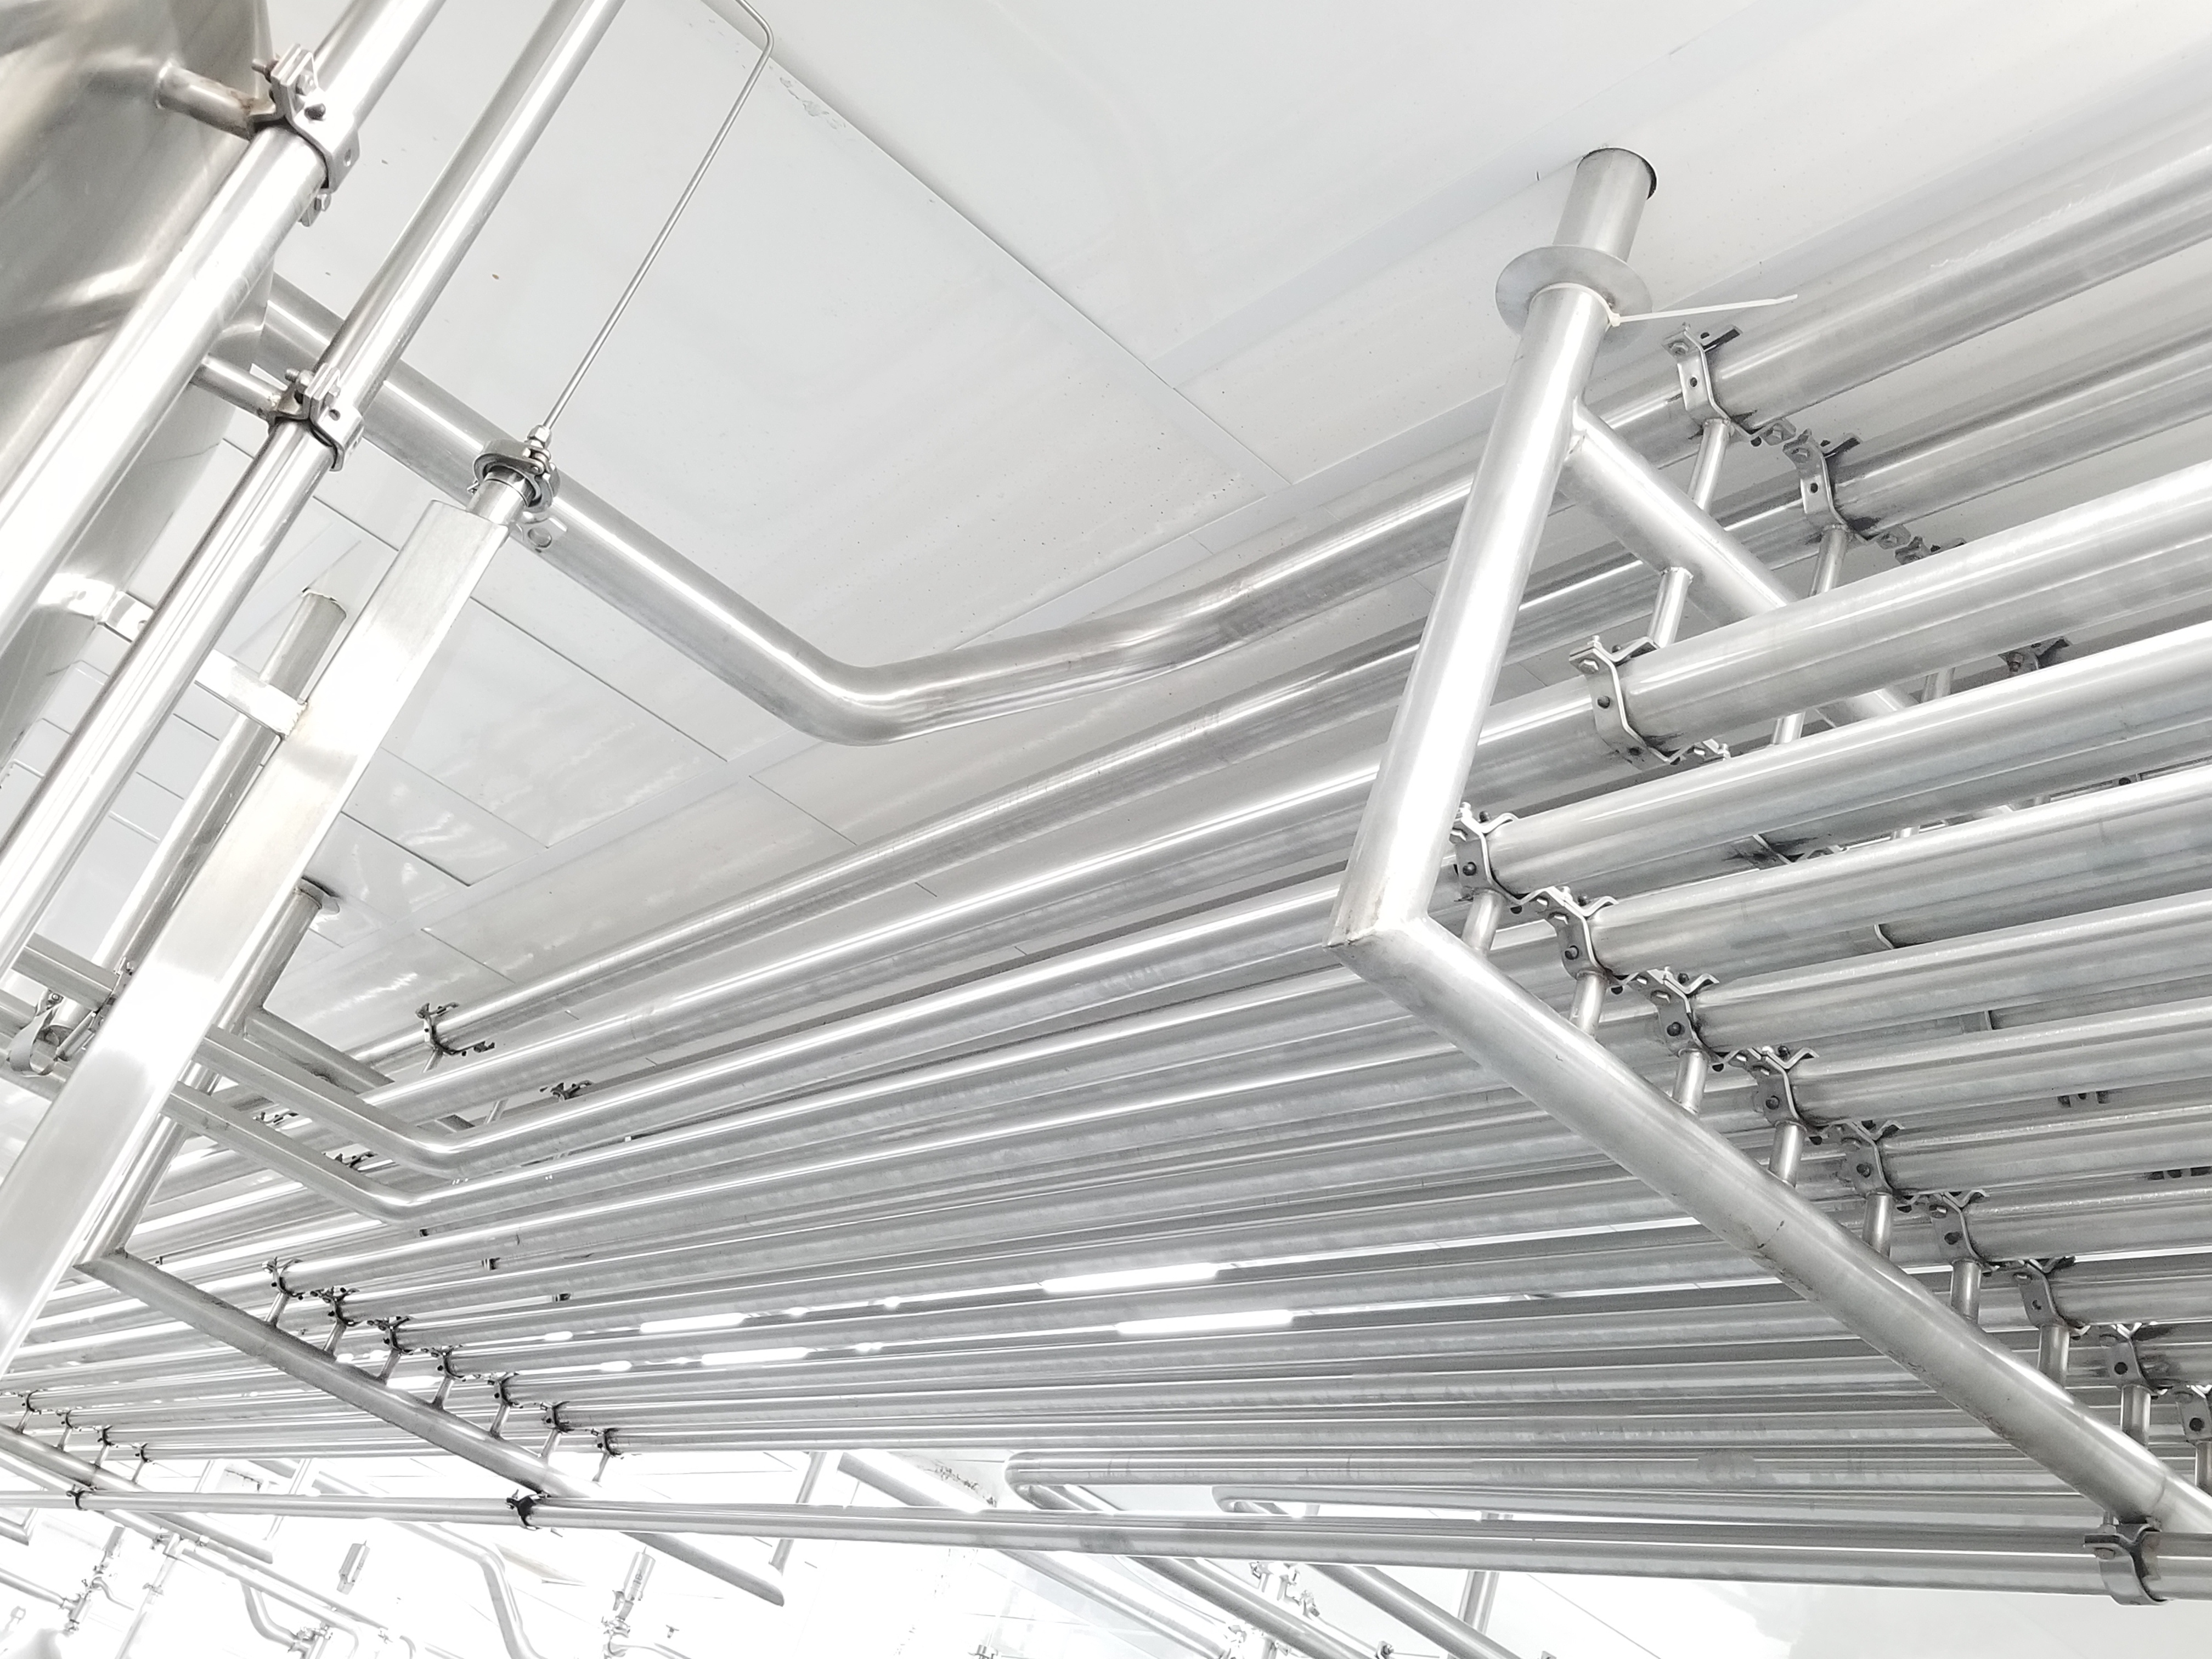 Stainless Steel 3 Inch Piping - Image 2 of 3